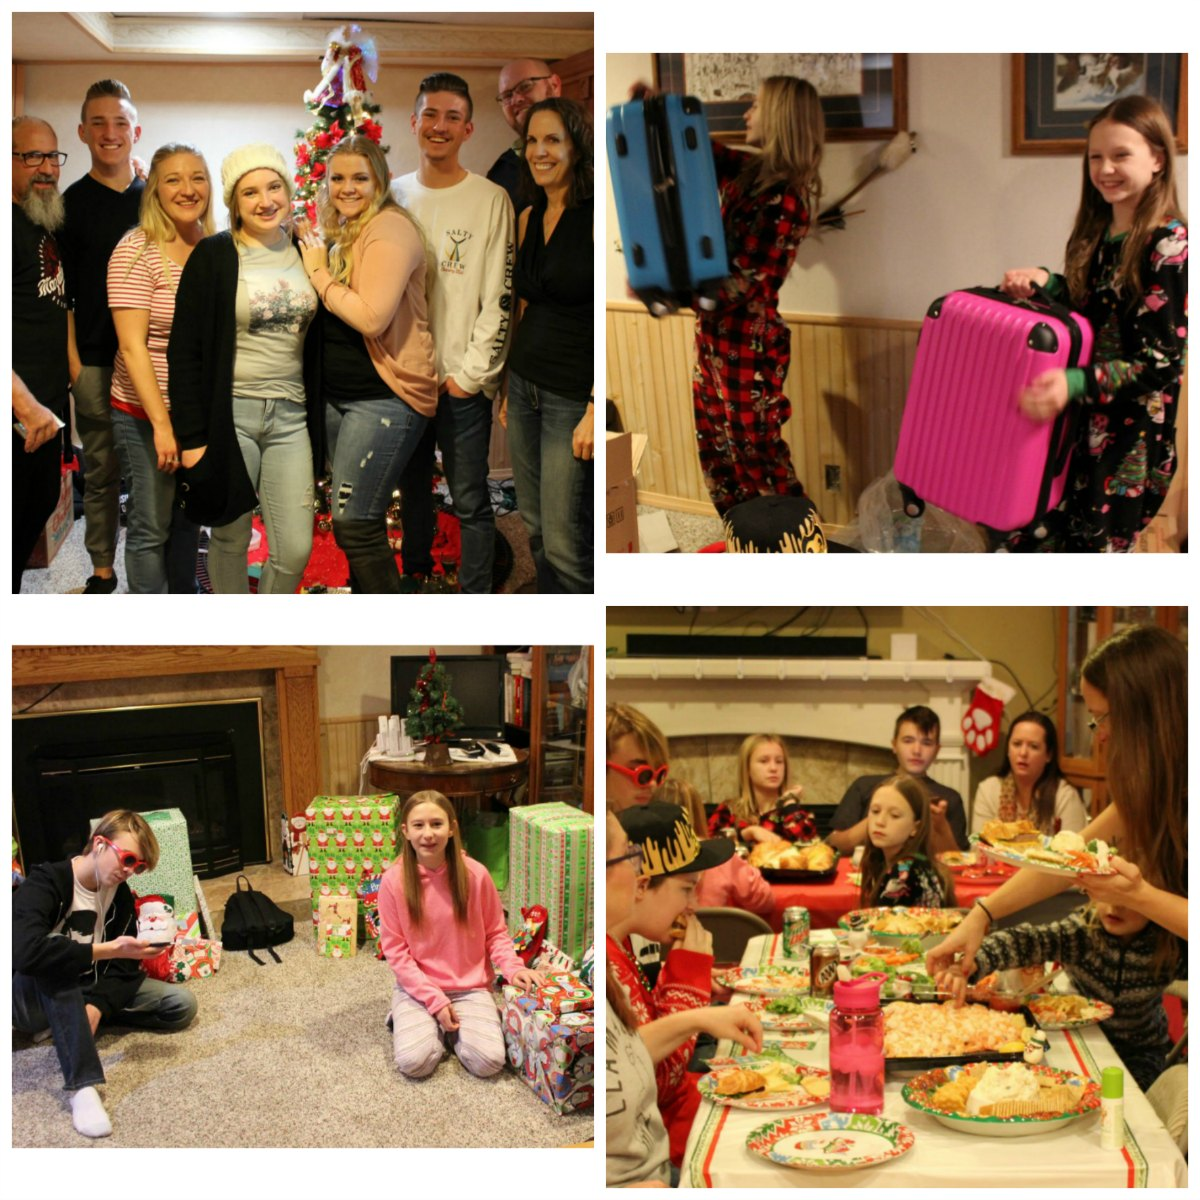 Christmas celebration collage